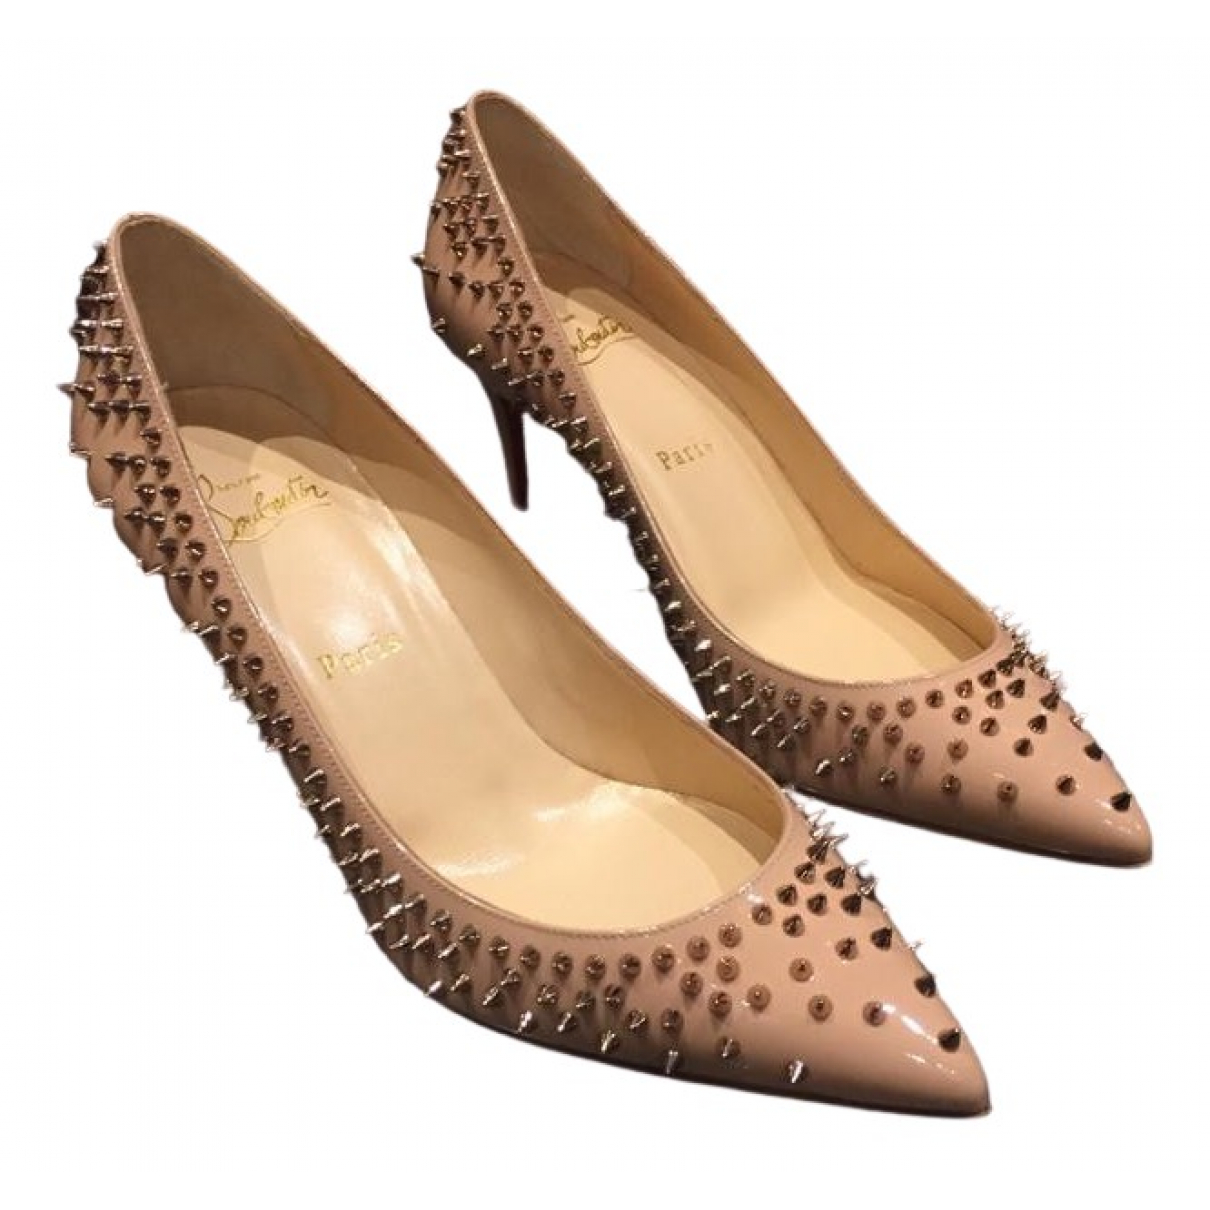 Christian Louboutin Pigalle Beige Patent leather Heels for Women 38.5 EU